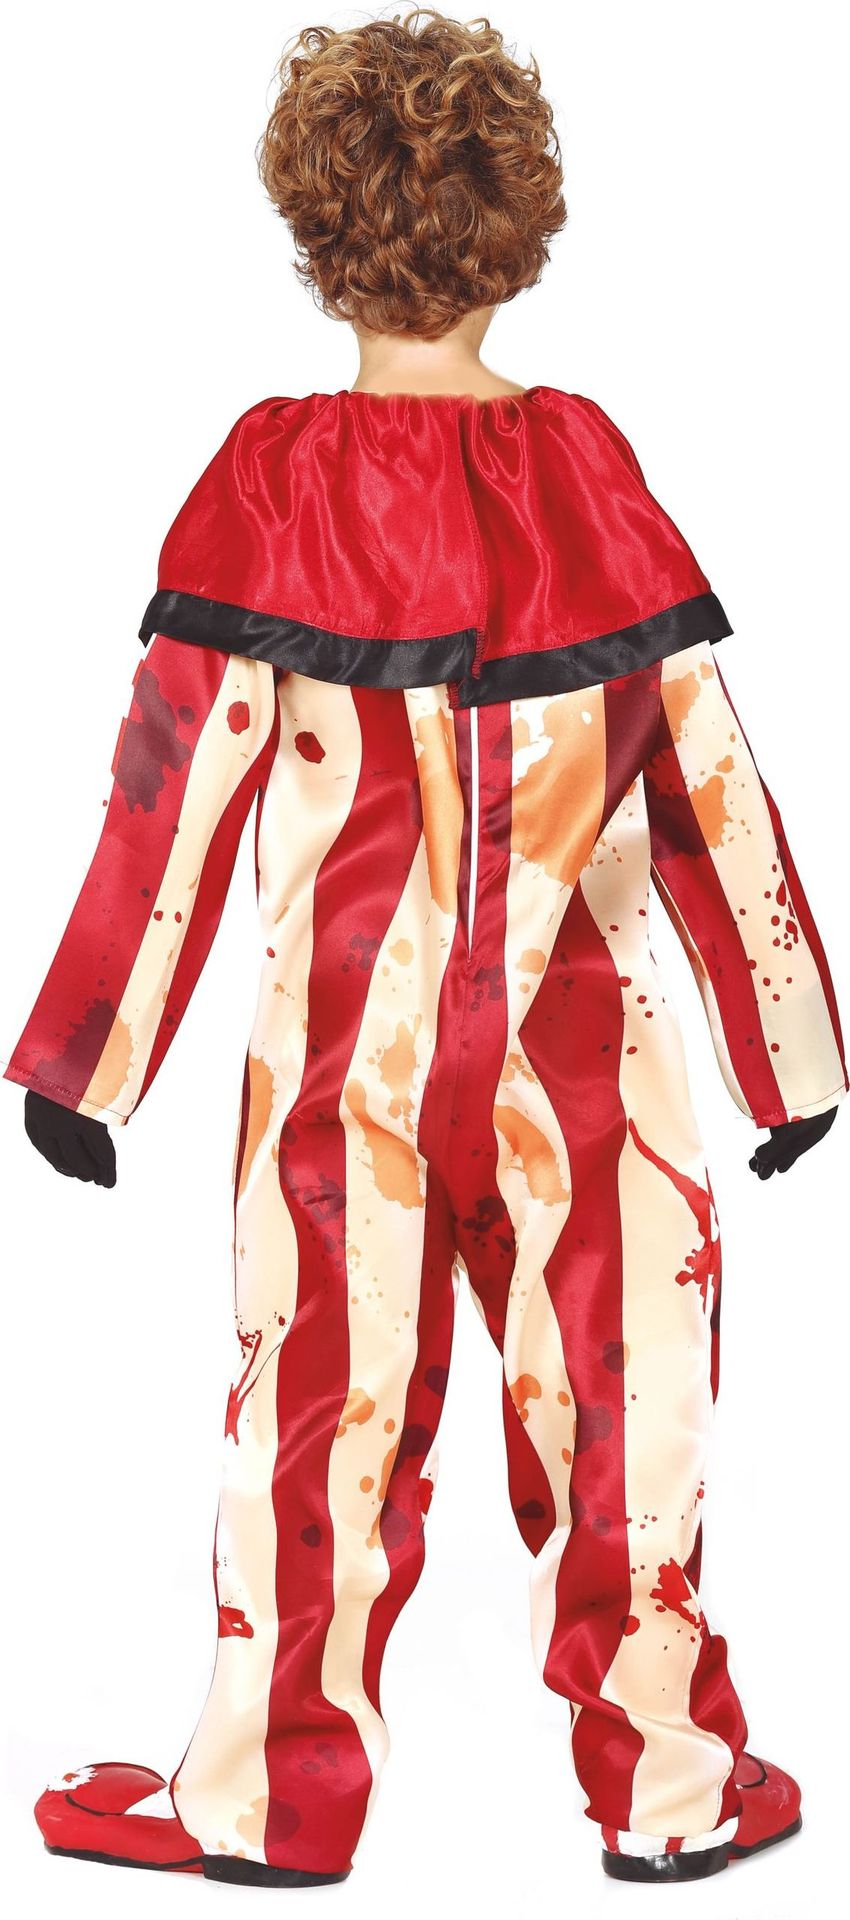 Killer clown outfit kind